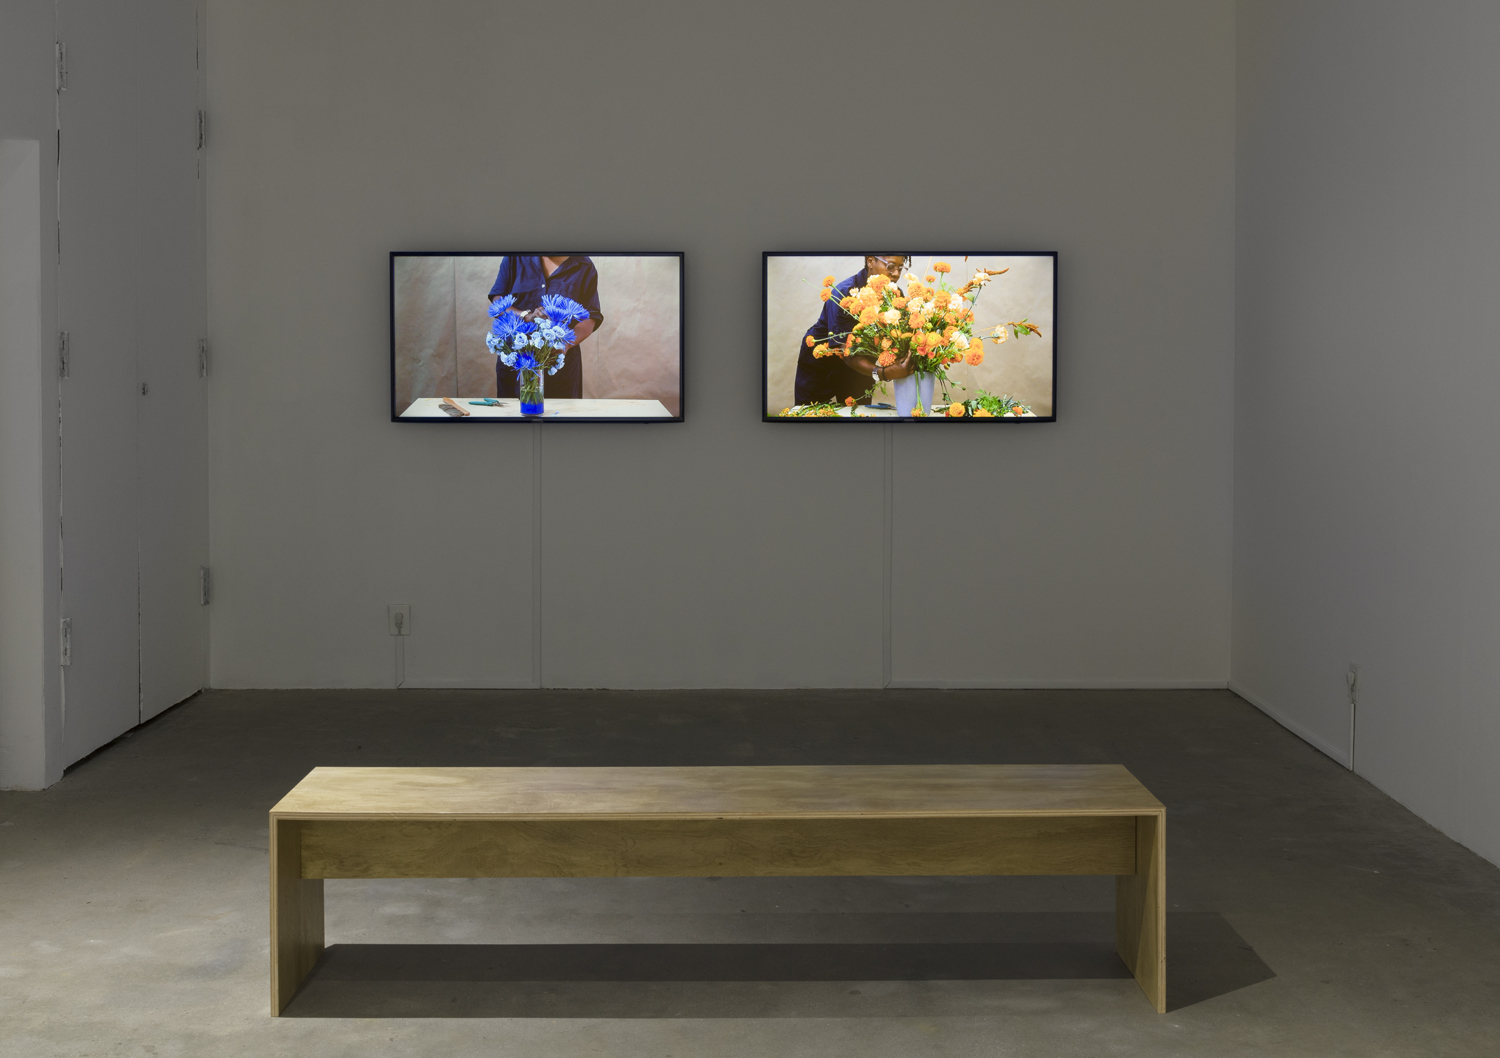 The video art installation by the artist Cauleen Smith is featured on two different television screens. On the left screen is a woman making a blue colored flower arrangement. On the right screen is the same woman making an orange colored floral arrangement. Both videos are by the artist Cauleen Smith.